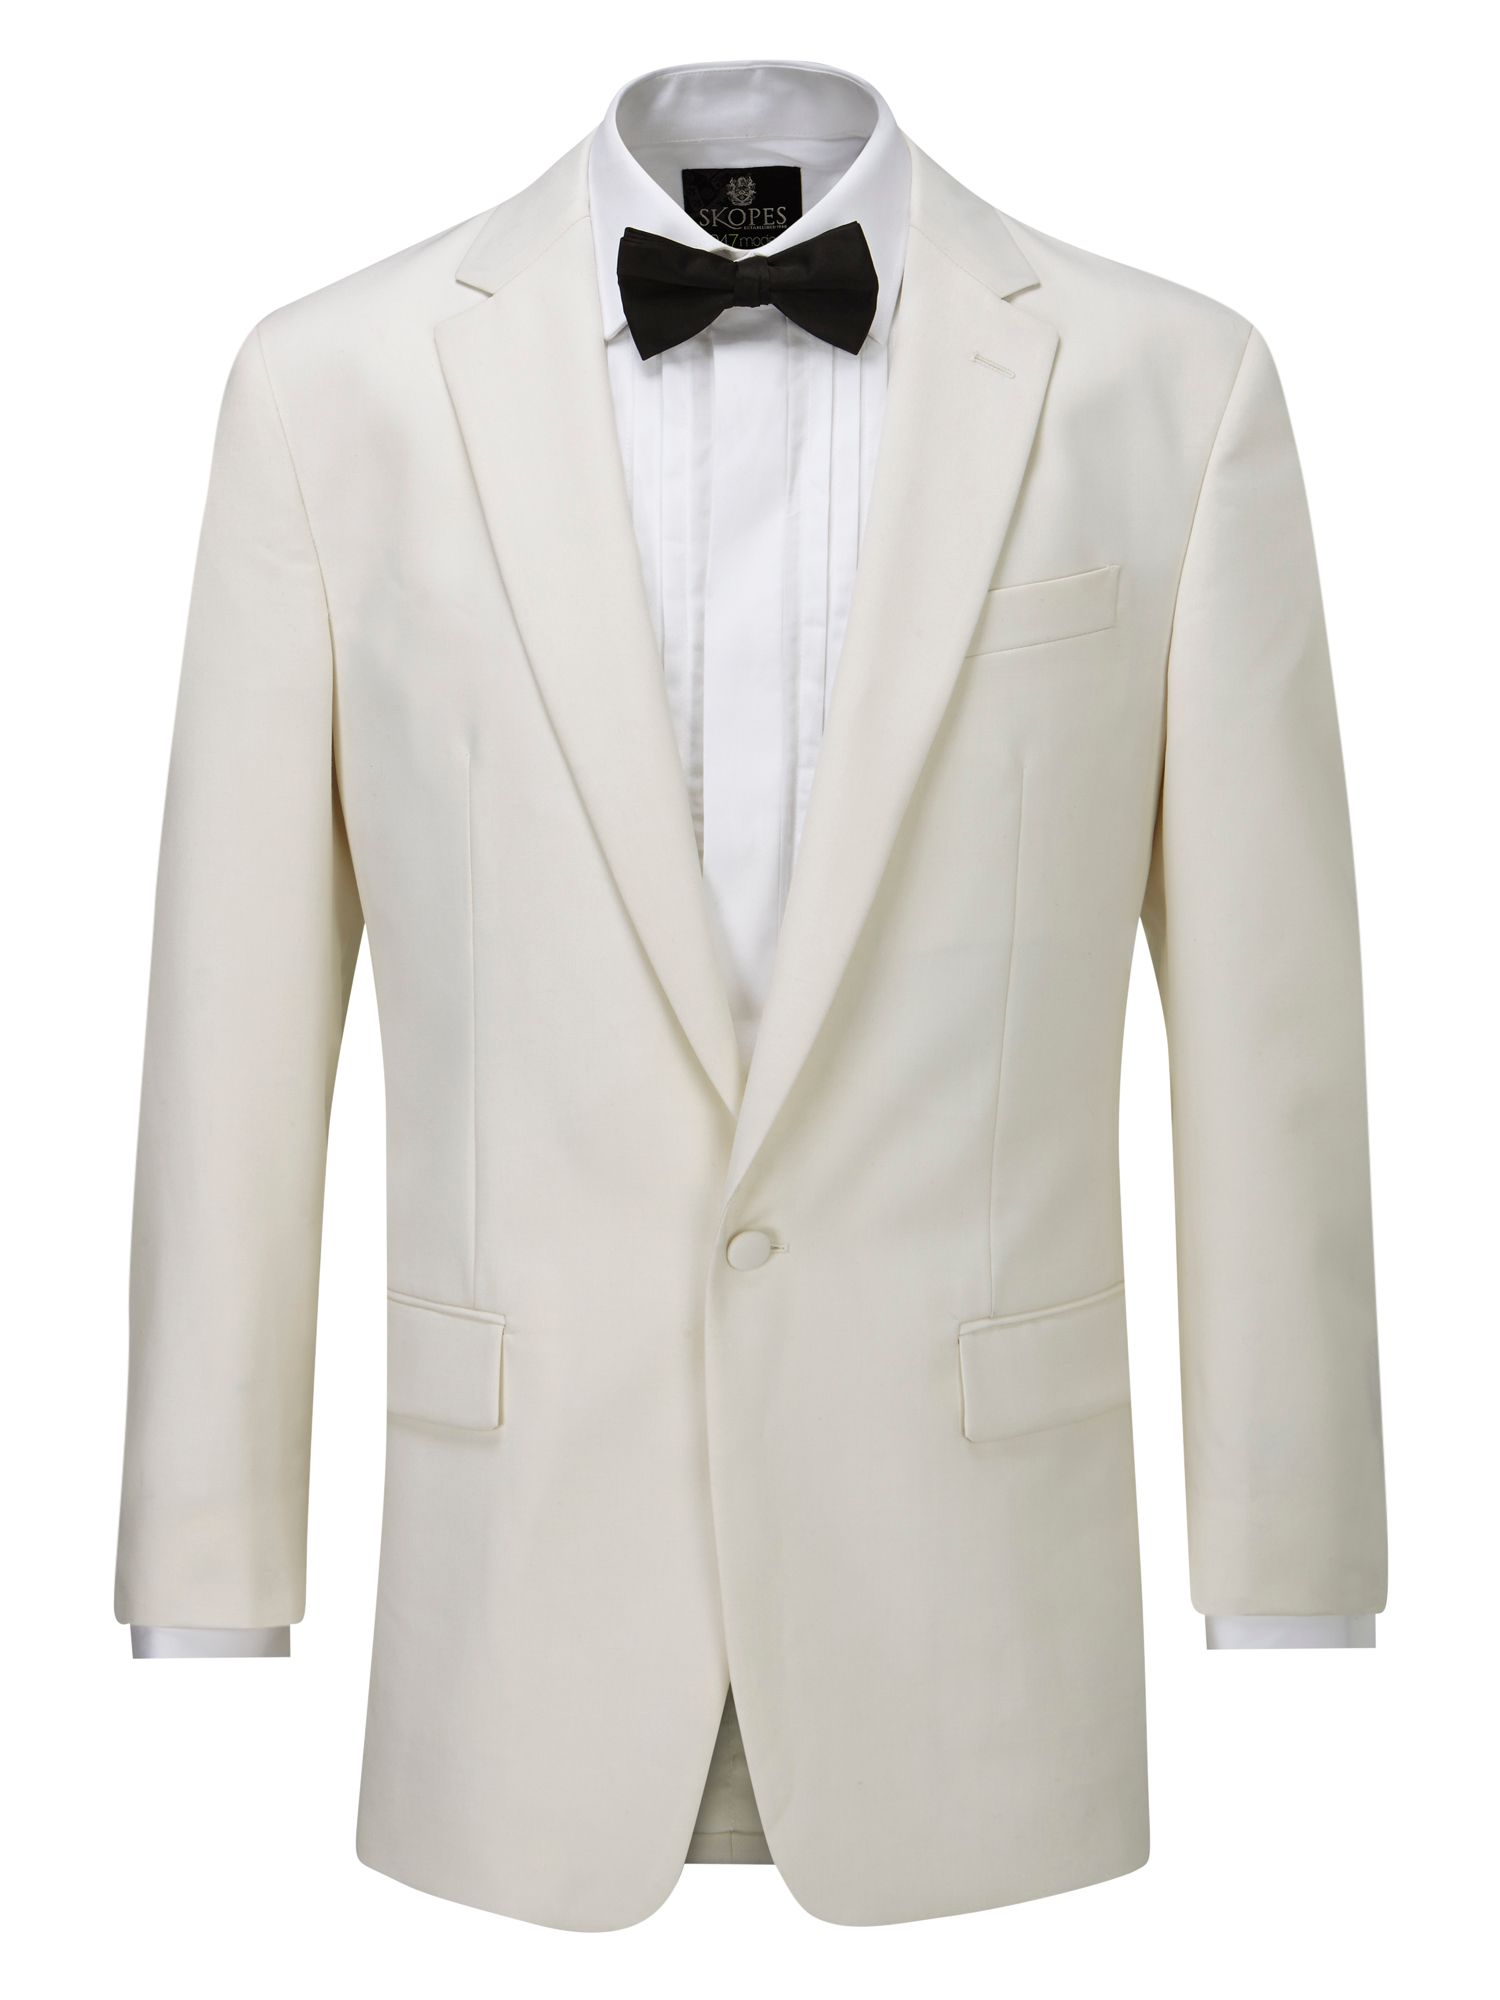 Edwardian Men's Formal Wear Mens Skopes Sorrento Button Blazer £99.00 AT vintagedancer.com